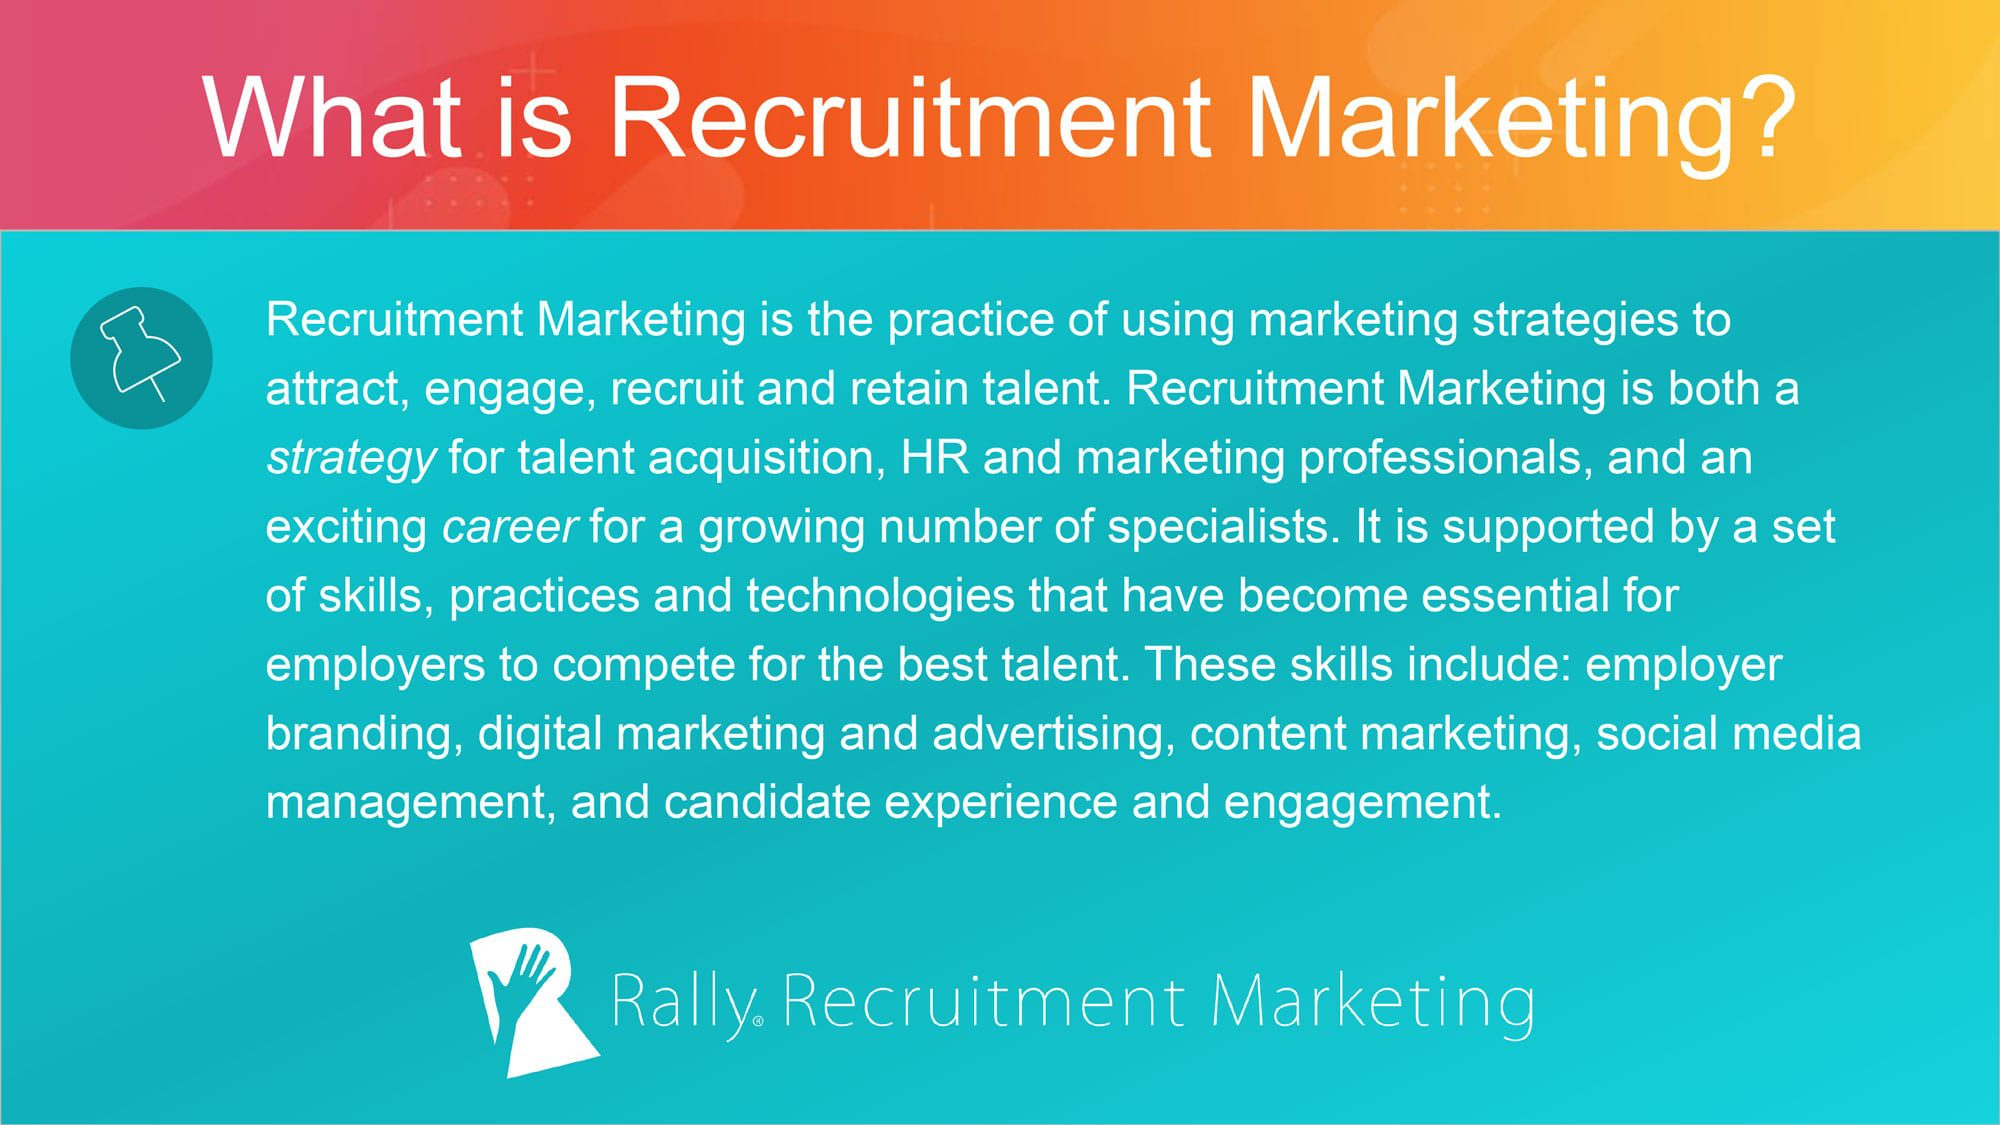 What is Recruitment Marketing definition